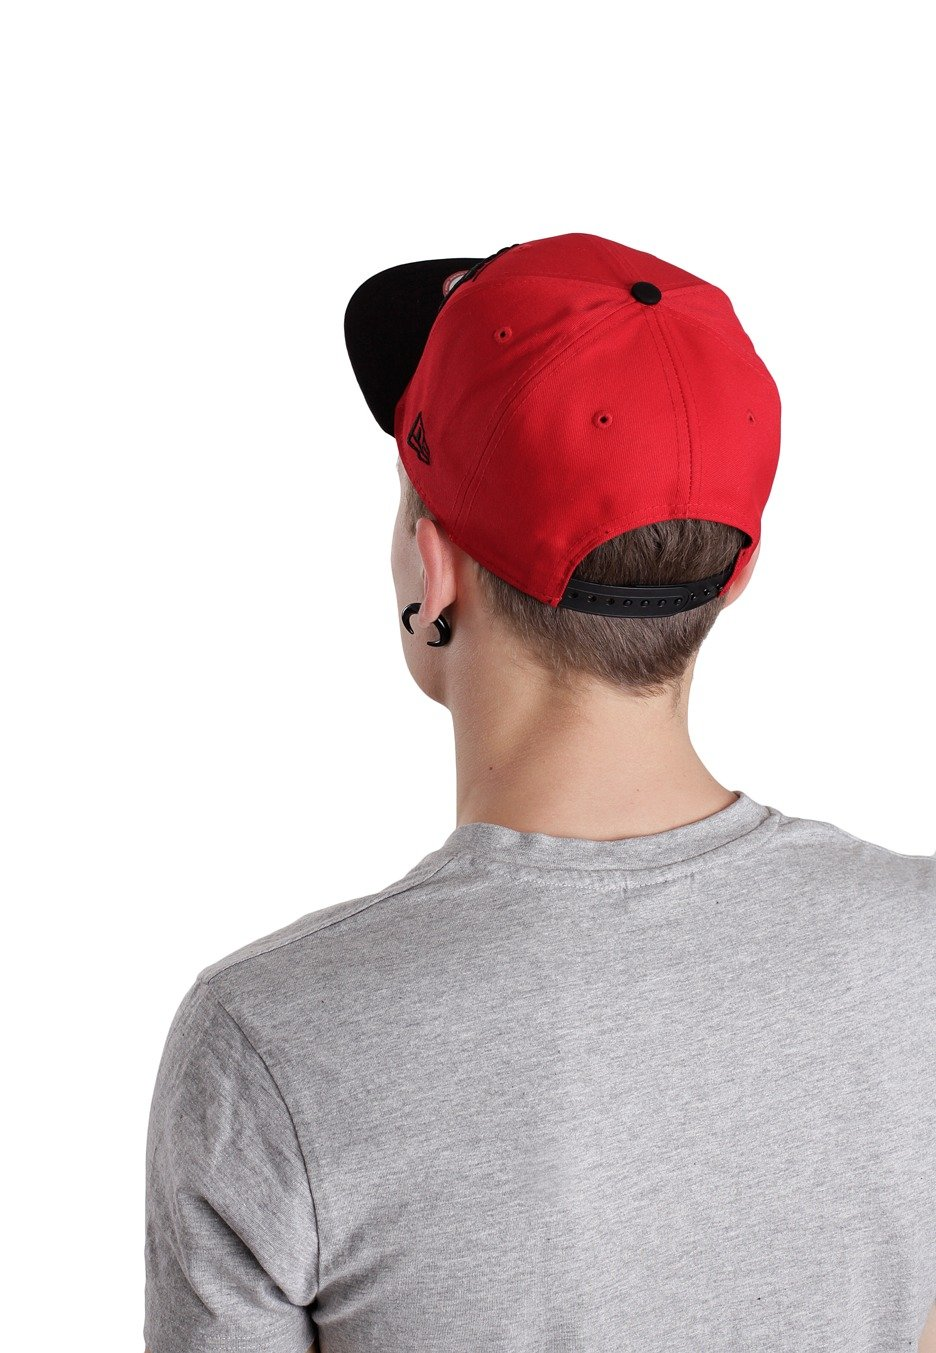 4c9a4f6f9 New Era - Breaker Snap Ironman Red/Black Snapback - Cappello ...